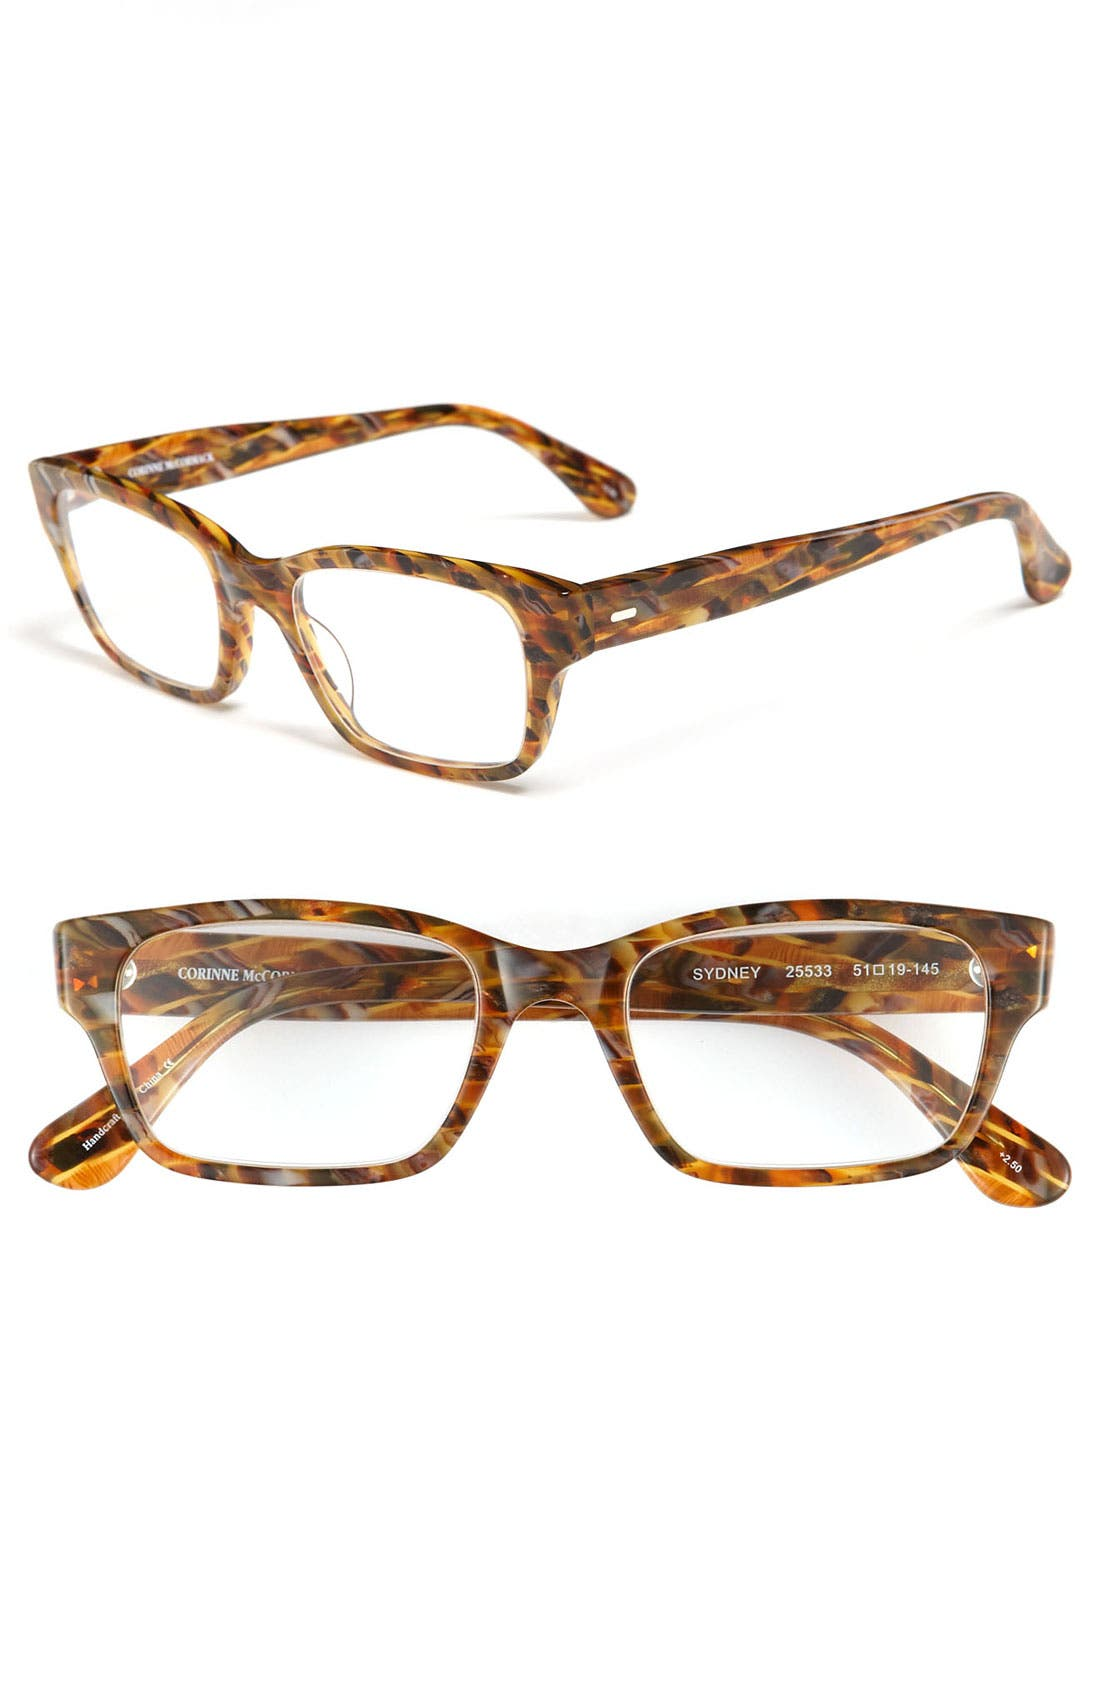 Main Image - Corinne McCormack 51mm Reading Glasses (2 for $88)